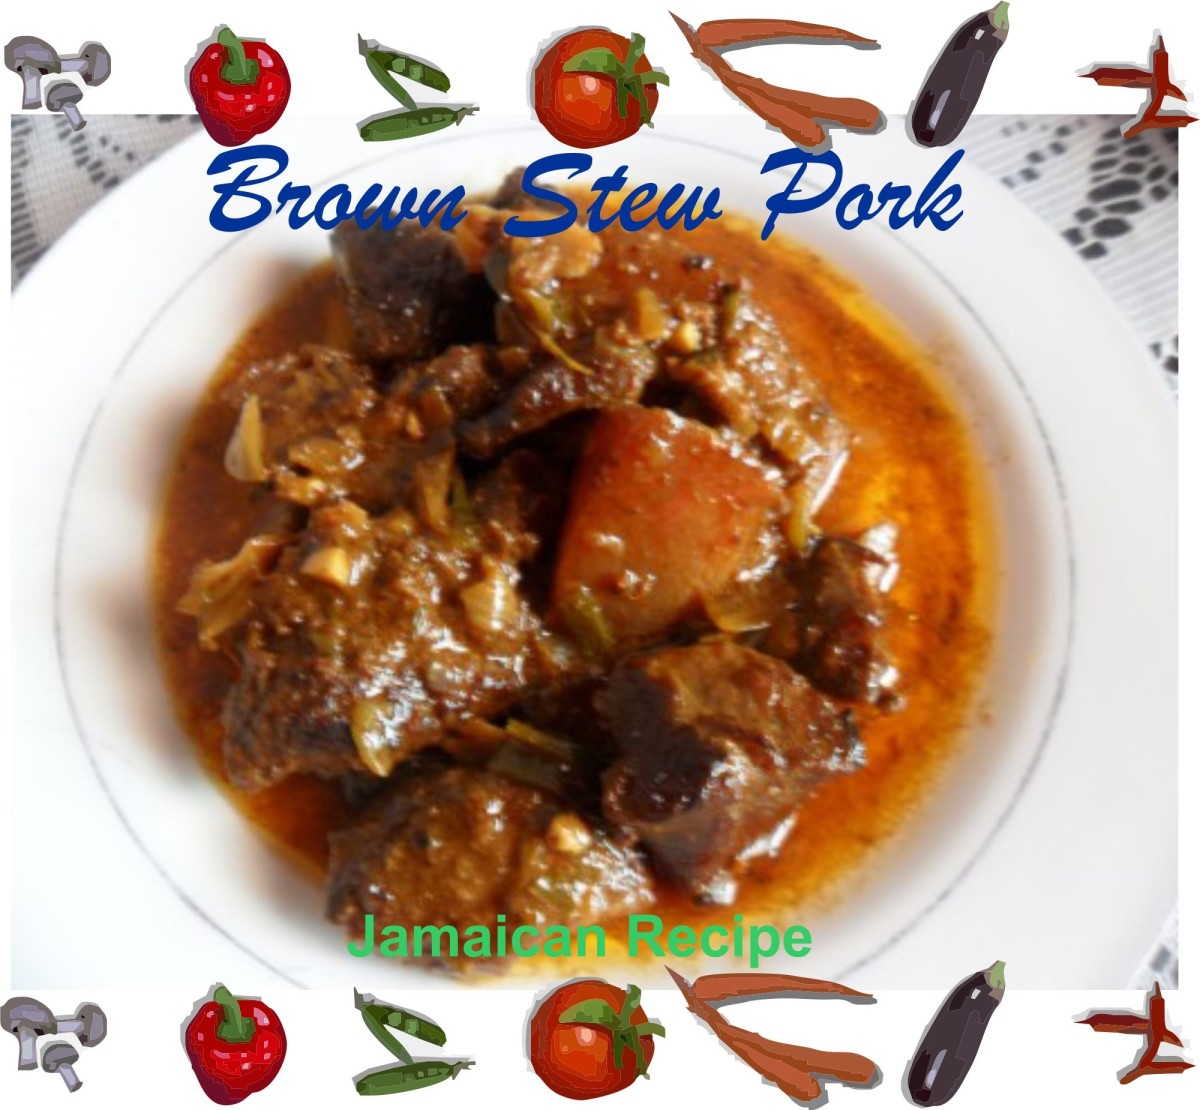 Photo of the Jamaican stewed pork